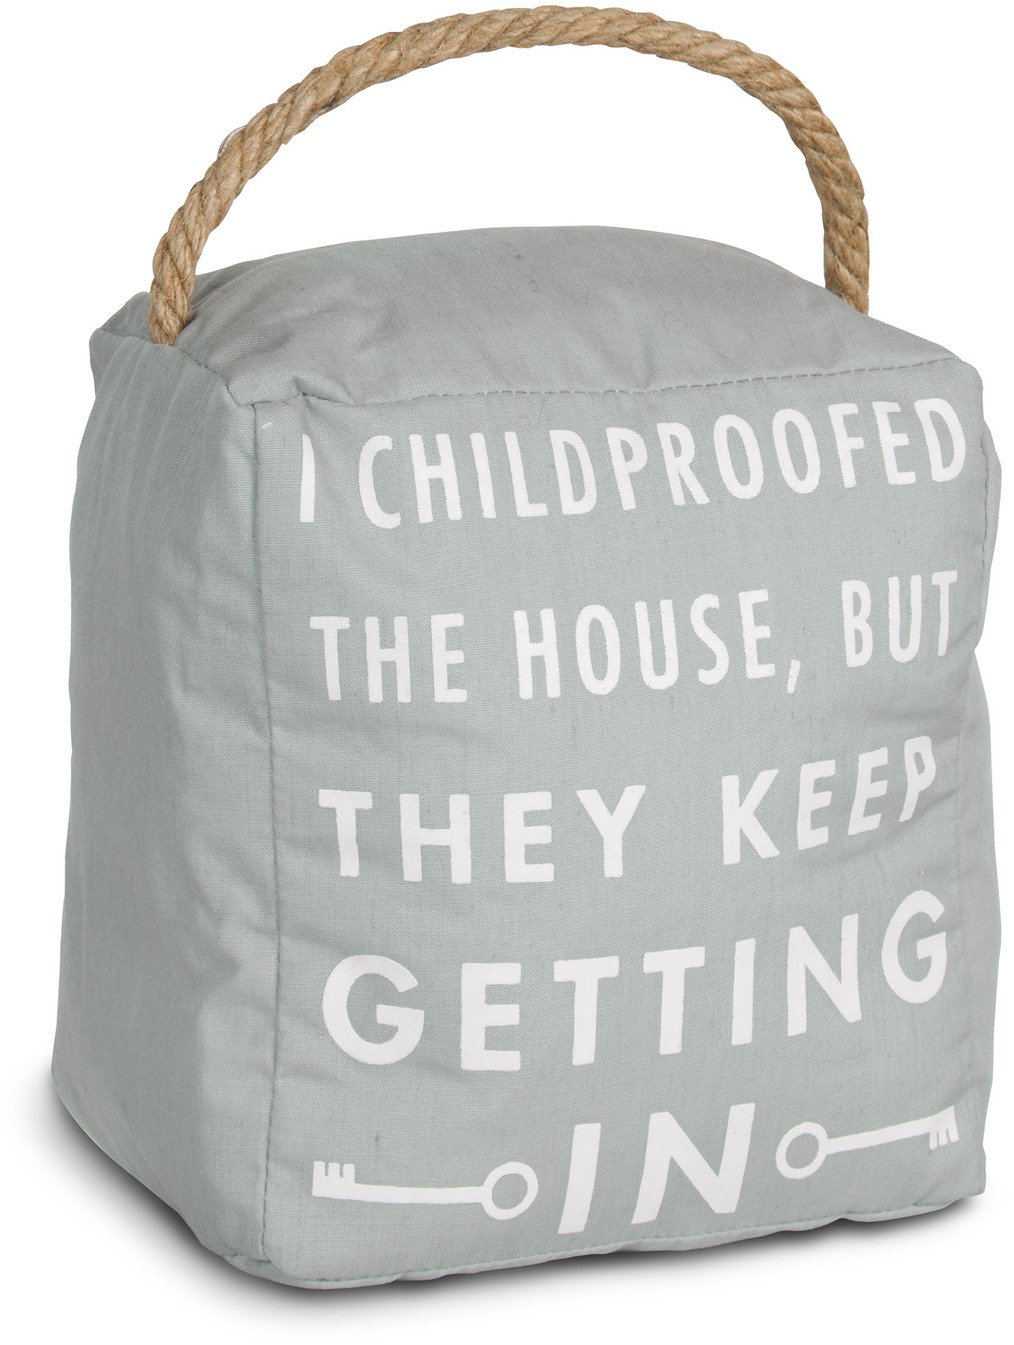 Pavilion Gift Company Open Door Decor - I Childproofed The House, But They Keep Getting In Gray Door Stopper Mom Gift